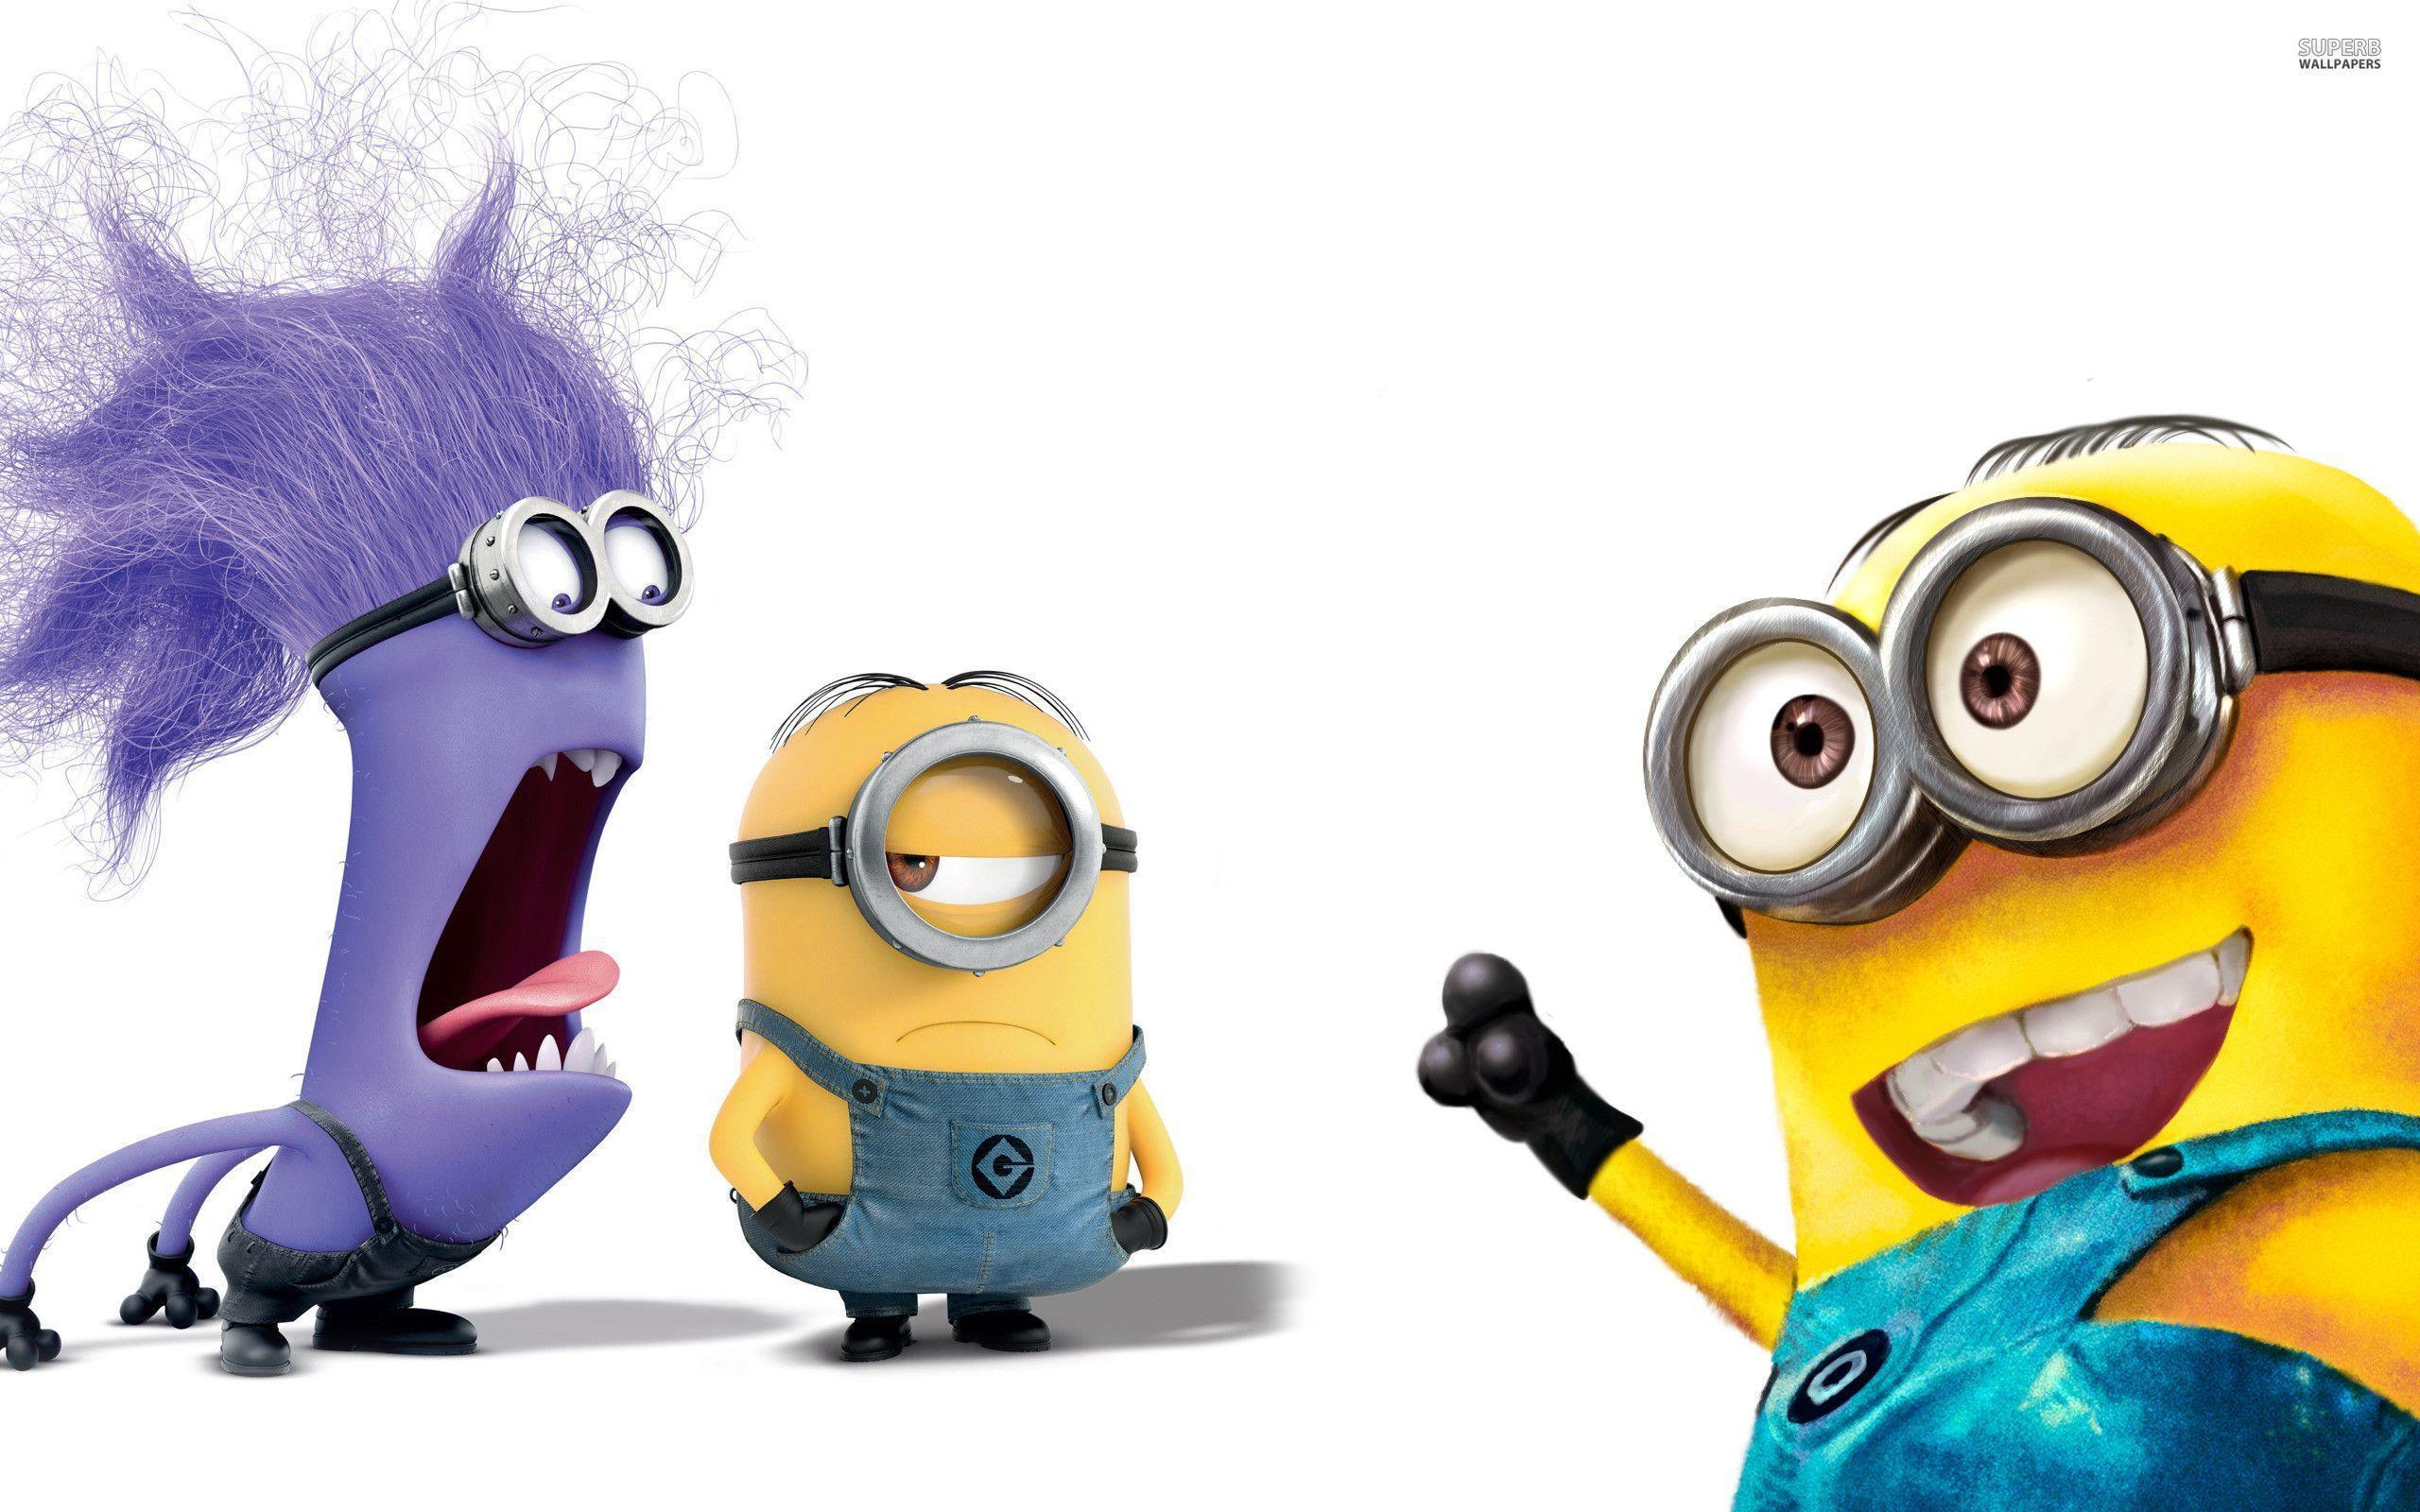 Despicable Me Minion Wallpapers 2560x1600